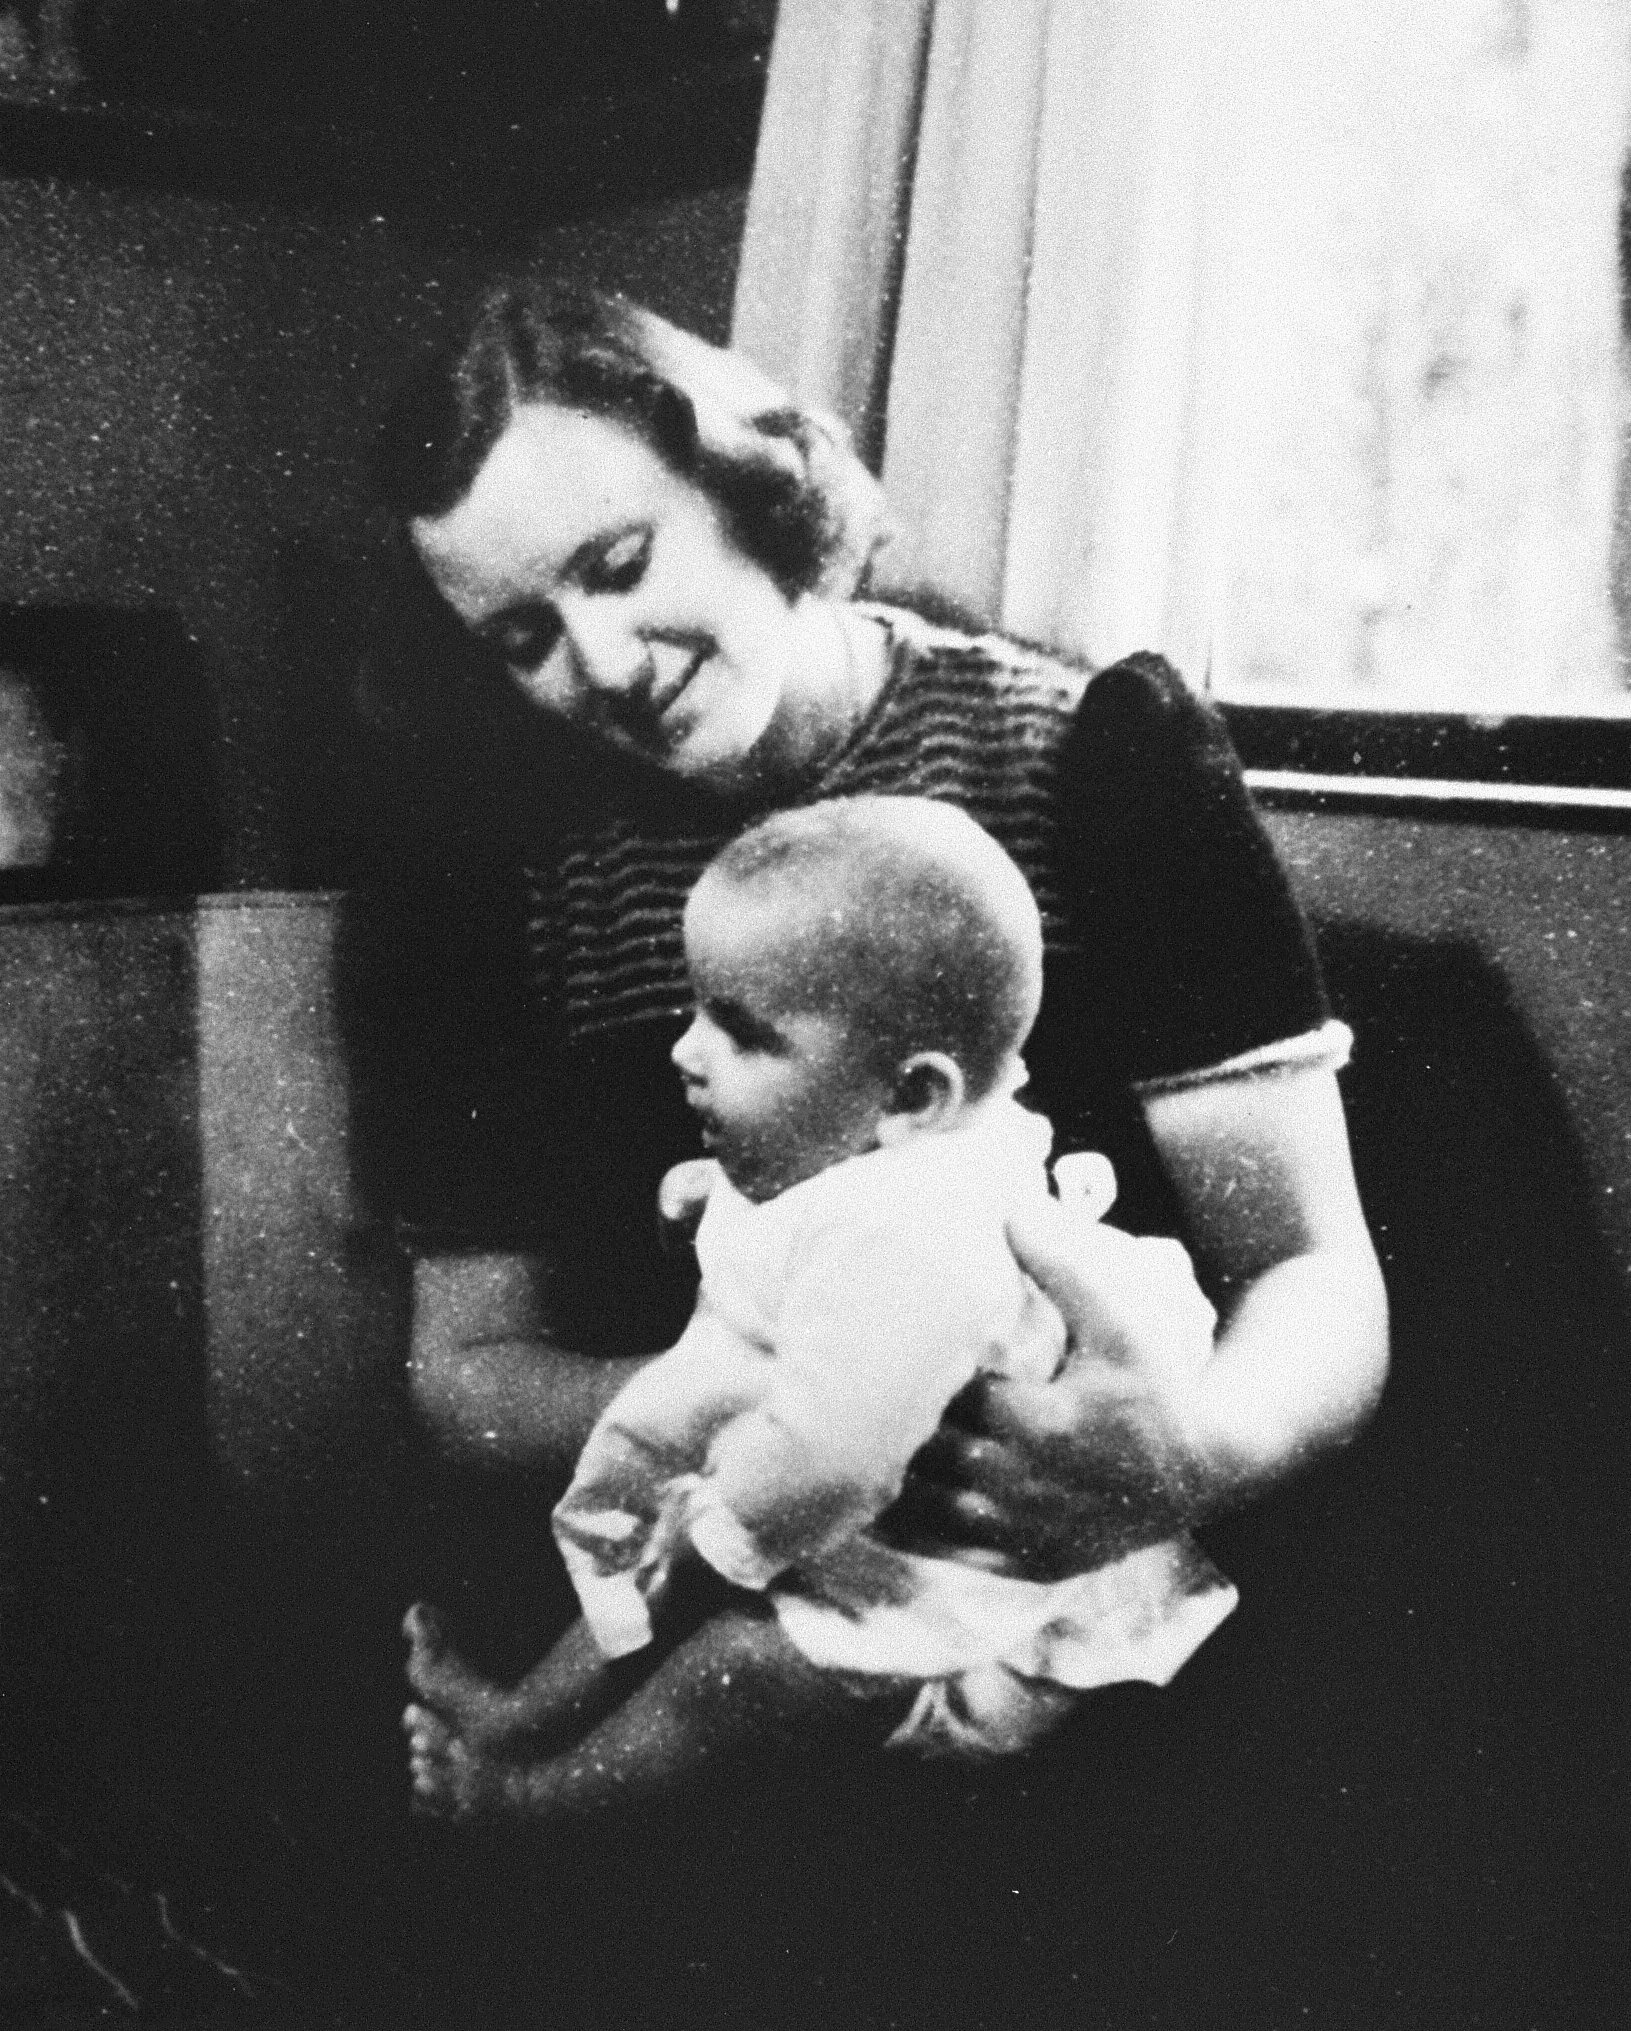 "Marian Pritchard with Erica Polak, a Jewish baby she was hiding in 1944. Part of the Dutch resistance under Nazi occupation, Pritchard later told an audience at a 1996 lecture at University of Michigan: ""By 1945, I had lied, stolen, cheated, deceived and even killed.""."" (photo from the US Holocaust Memorial Museum)"